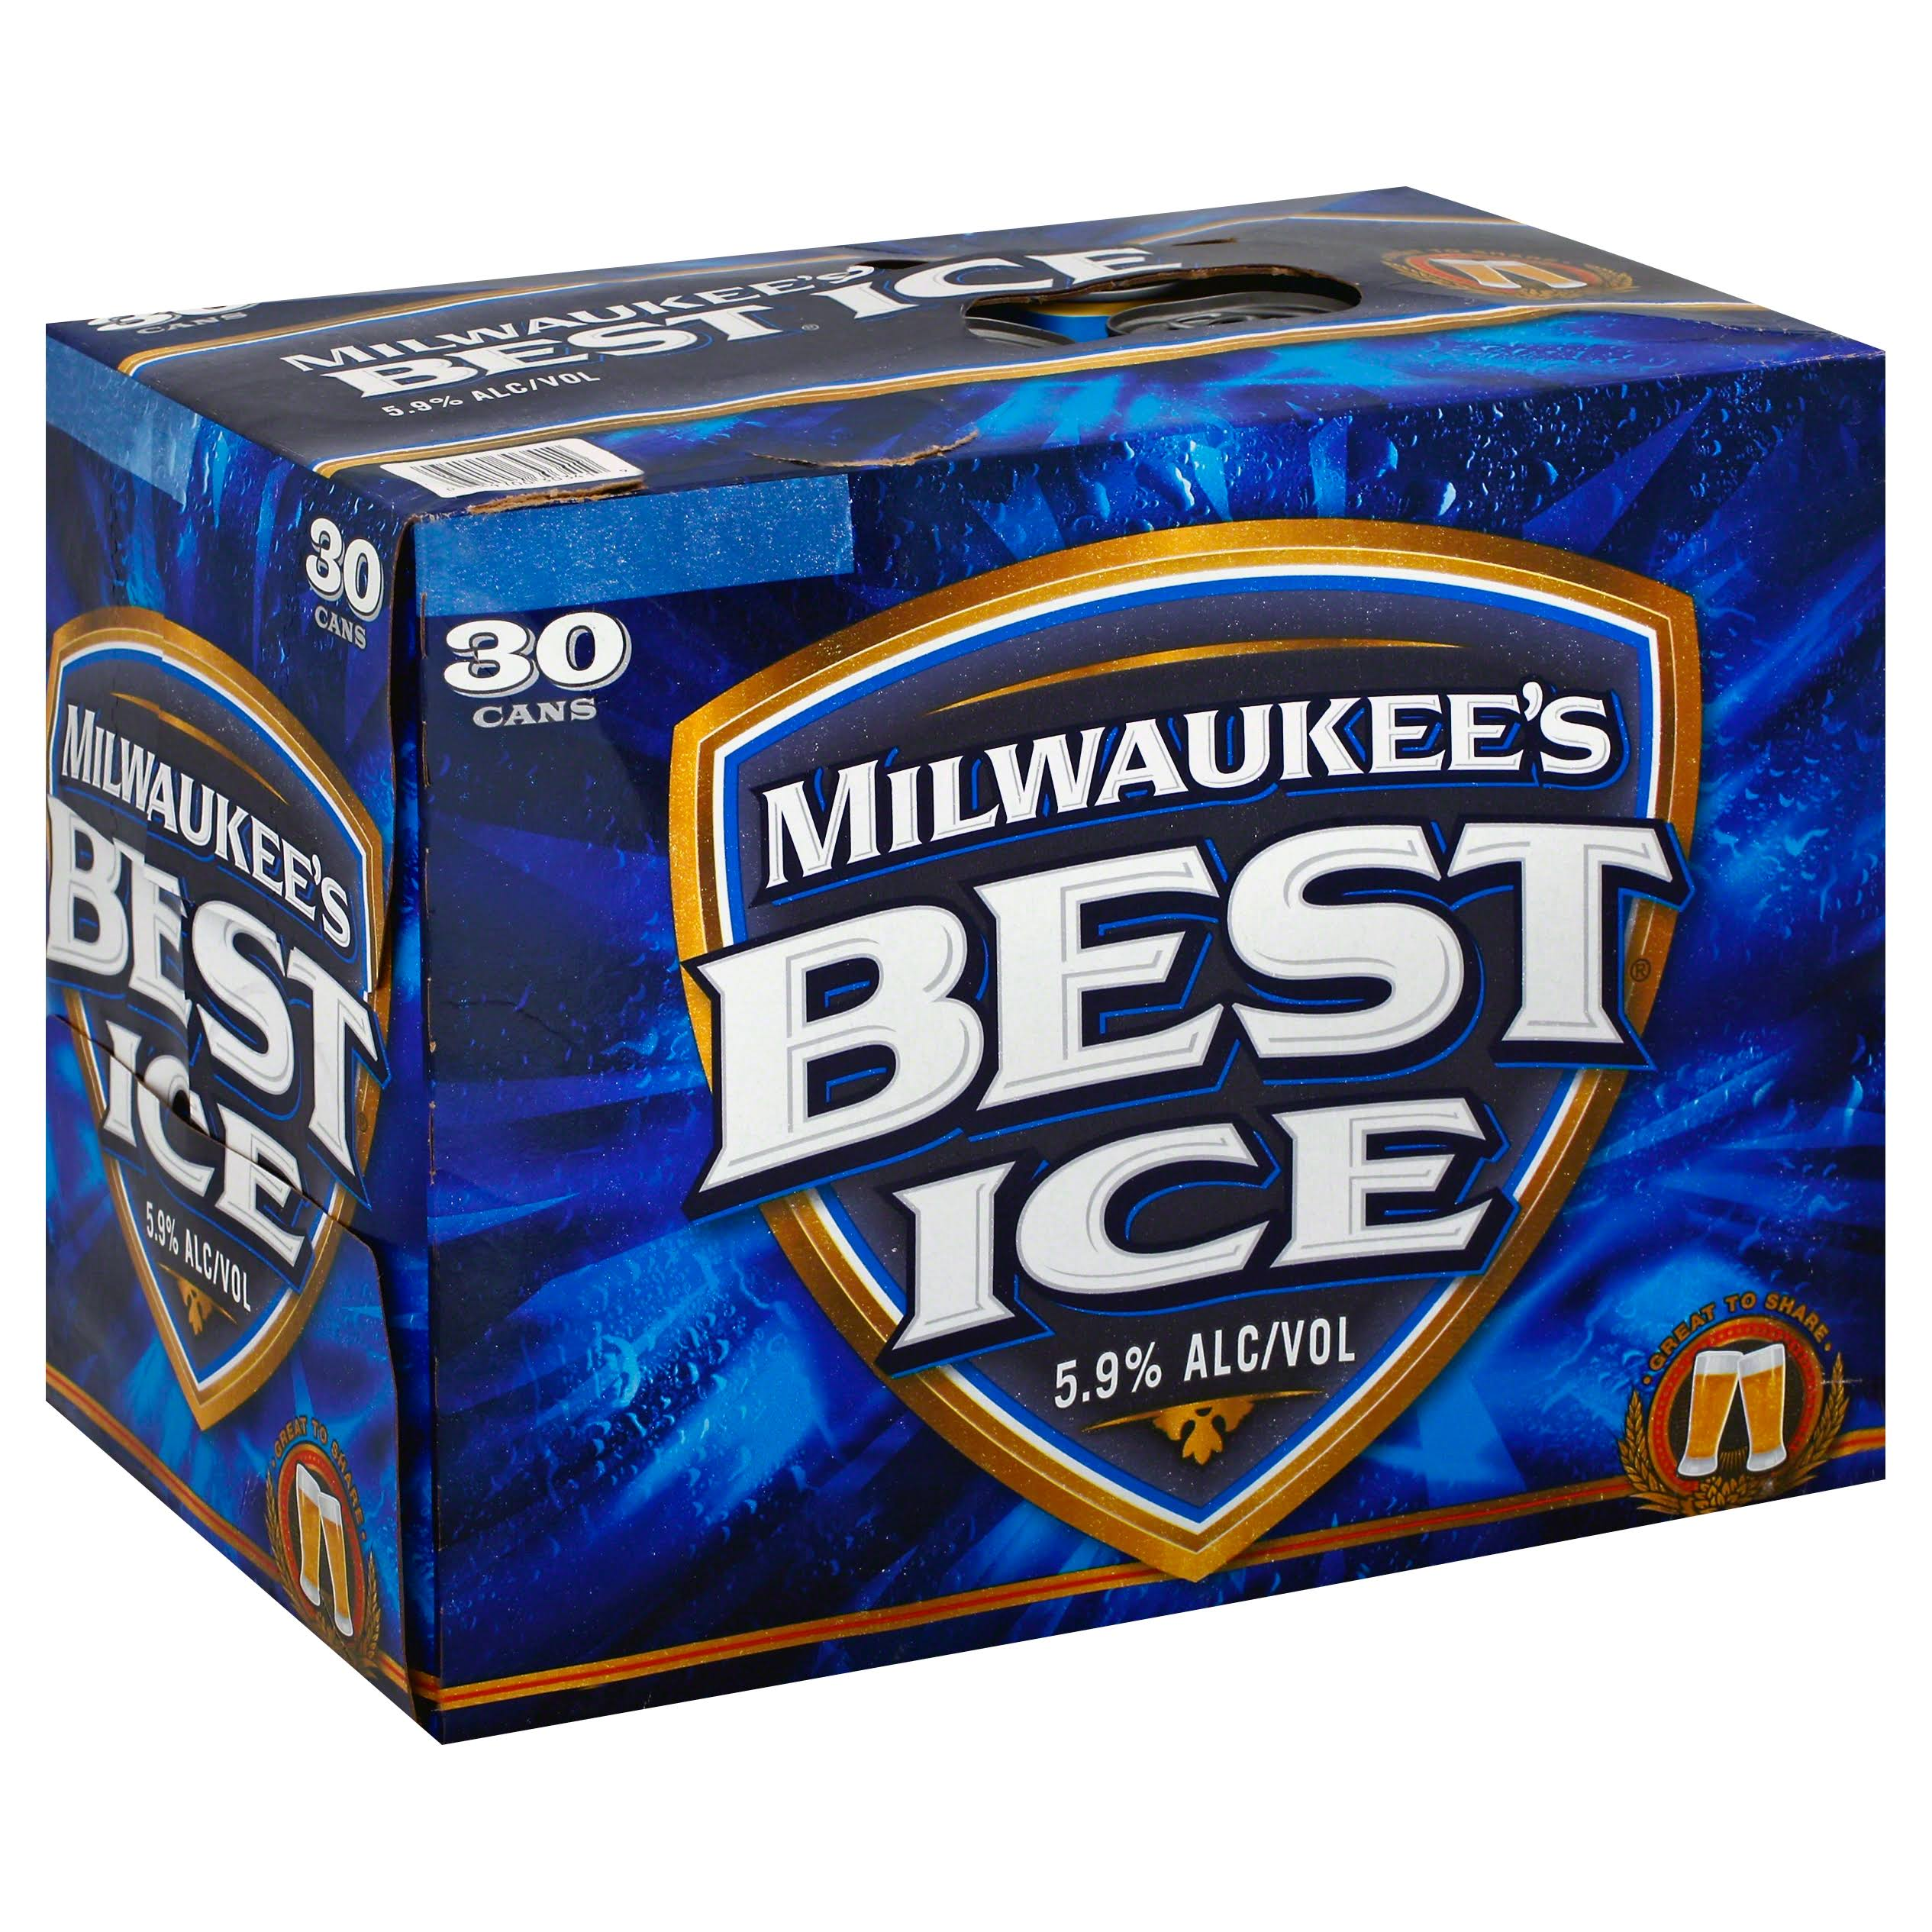 Milwaukee's Best Ice Beer - 30 Cans